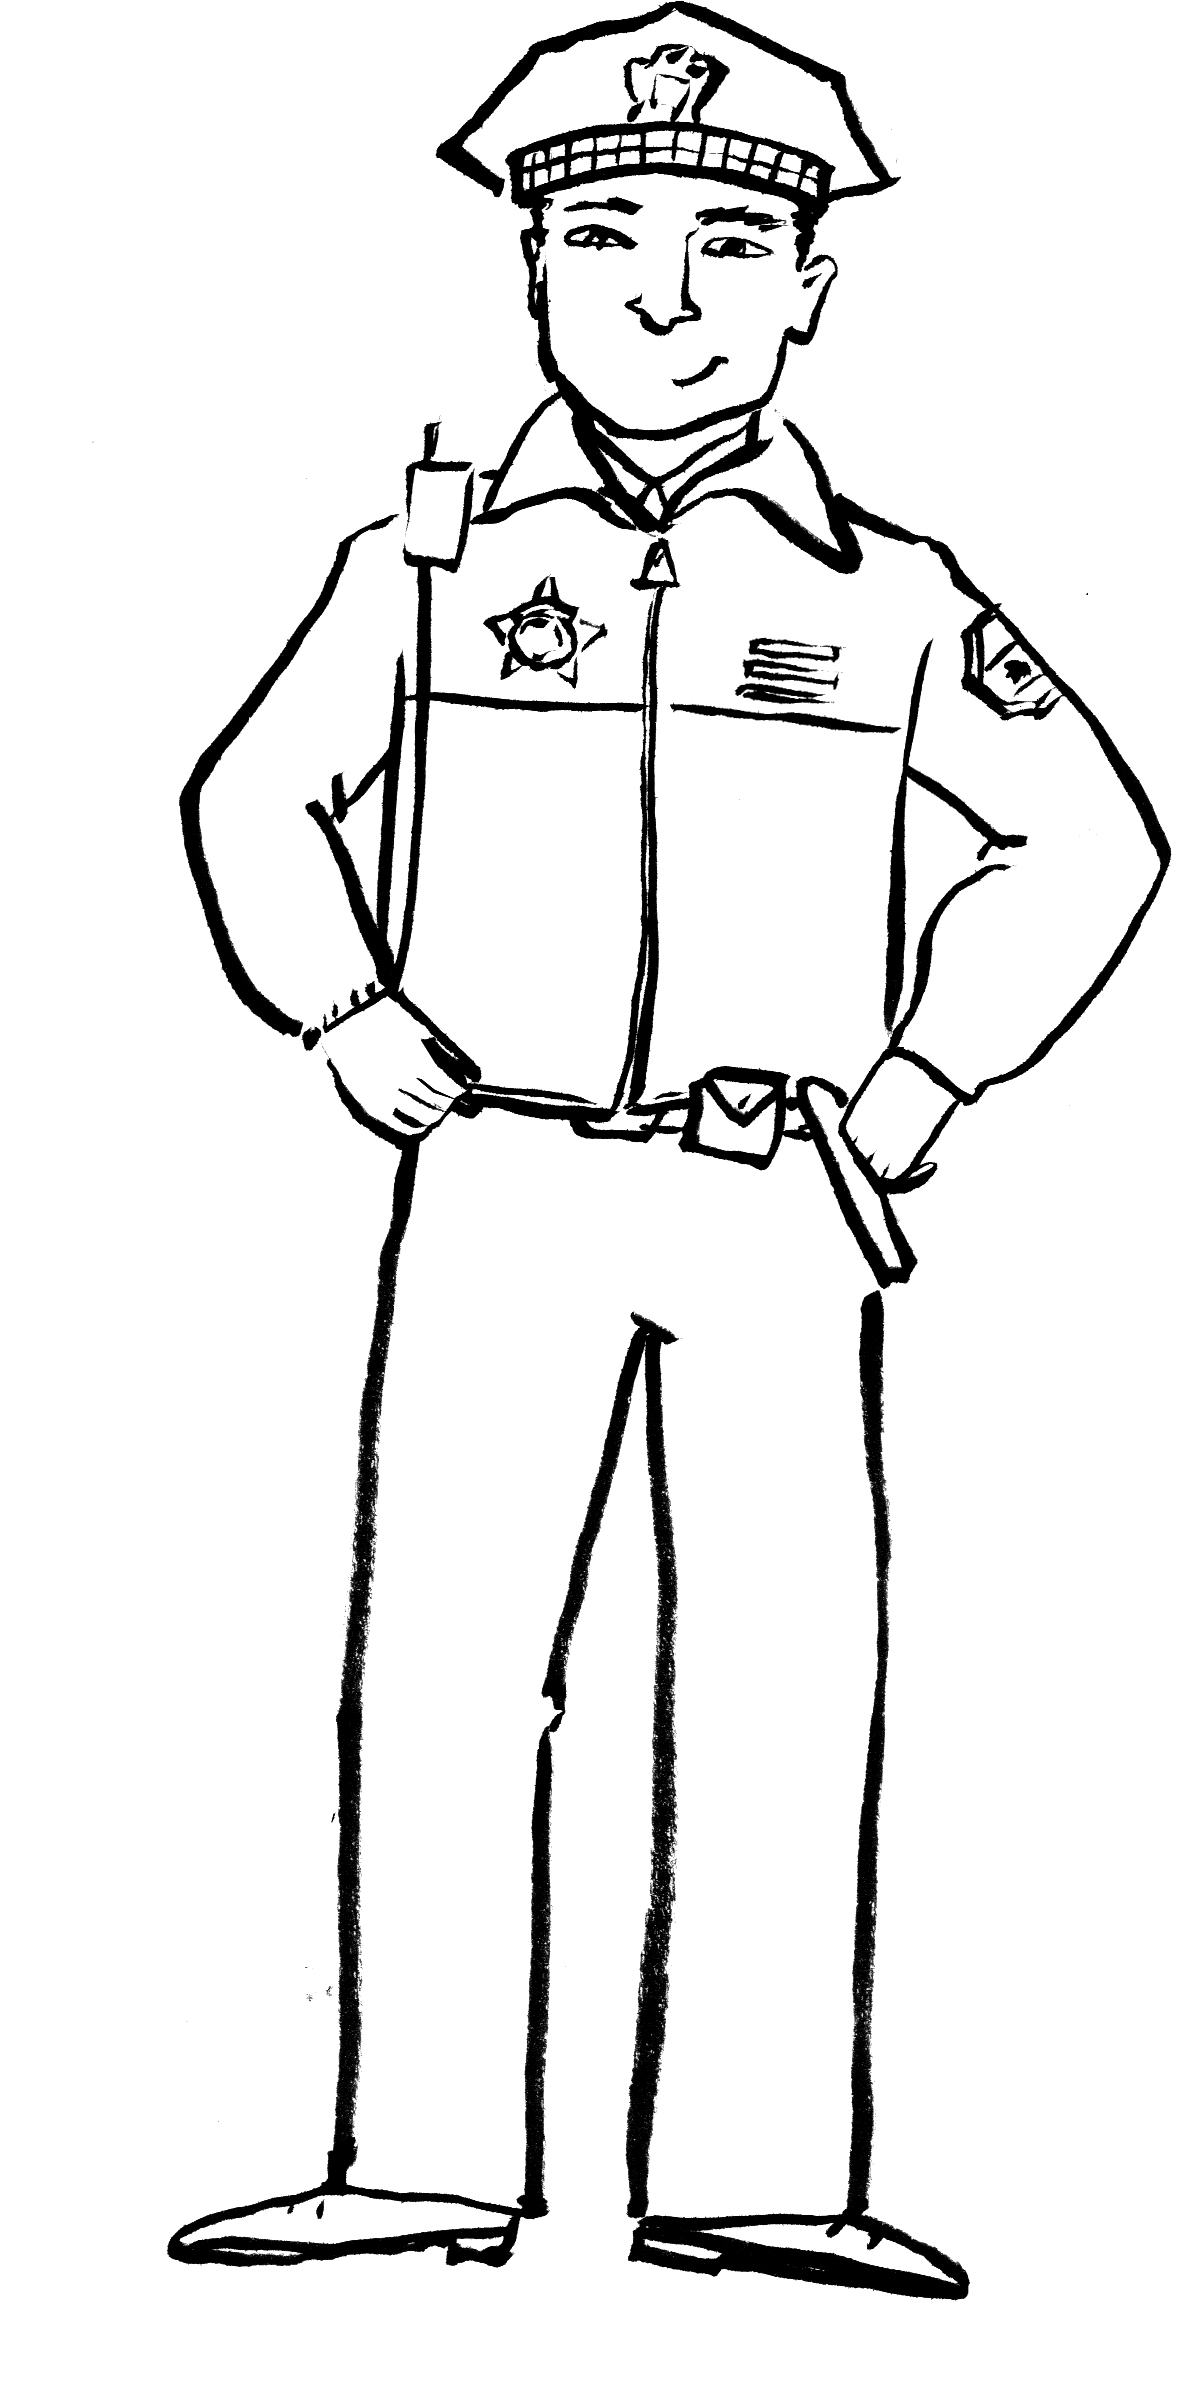 cops coloring pages - photo#7